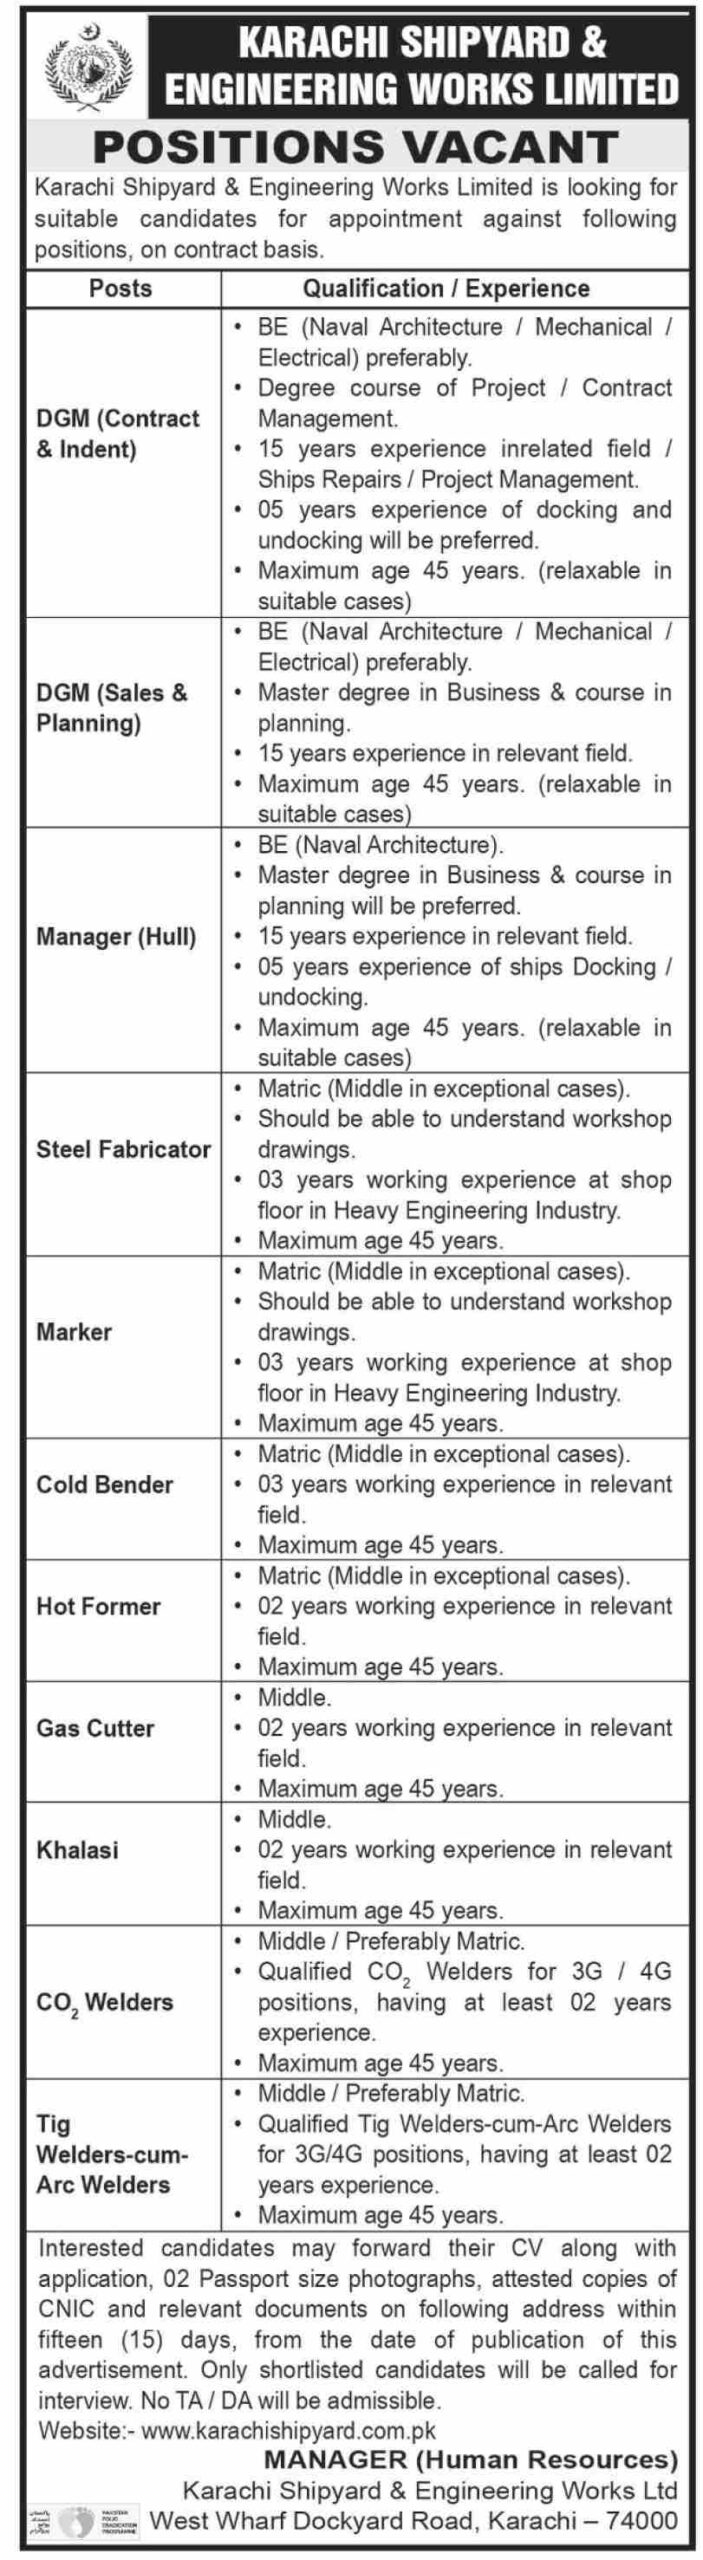 Karachi Shipyard And Engineering Works Limited Jobs September 2020